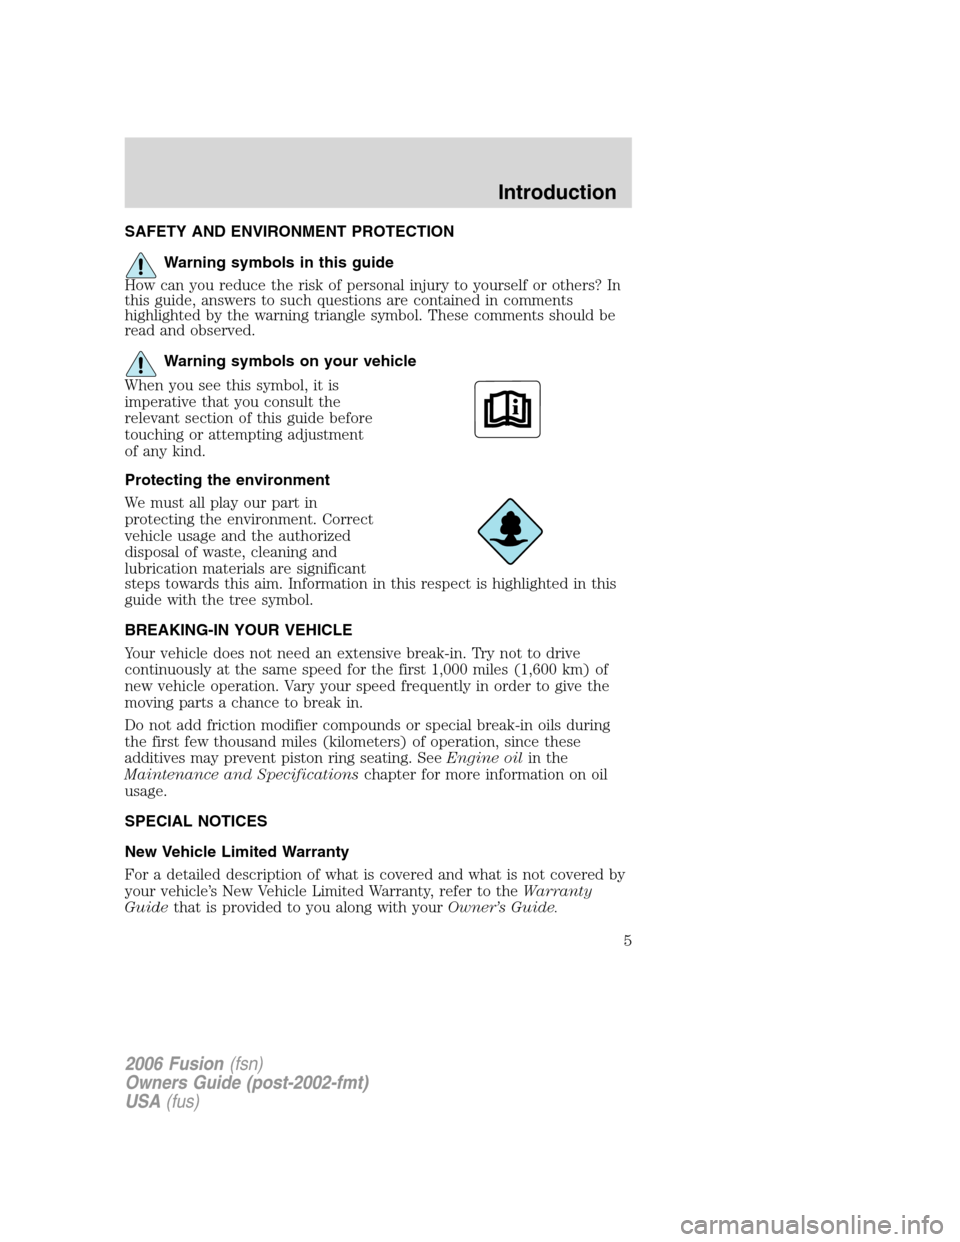 FORD FUSION (AMERICAS) 2006 1.G Owners Manual, Page 5